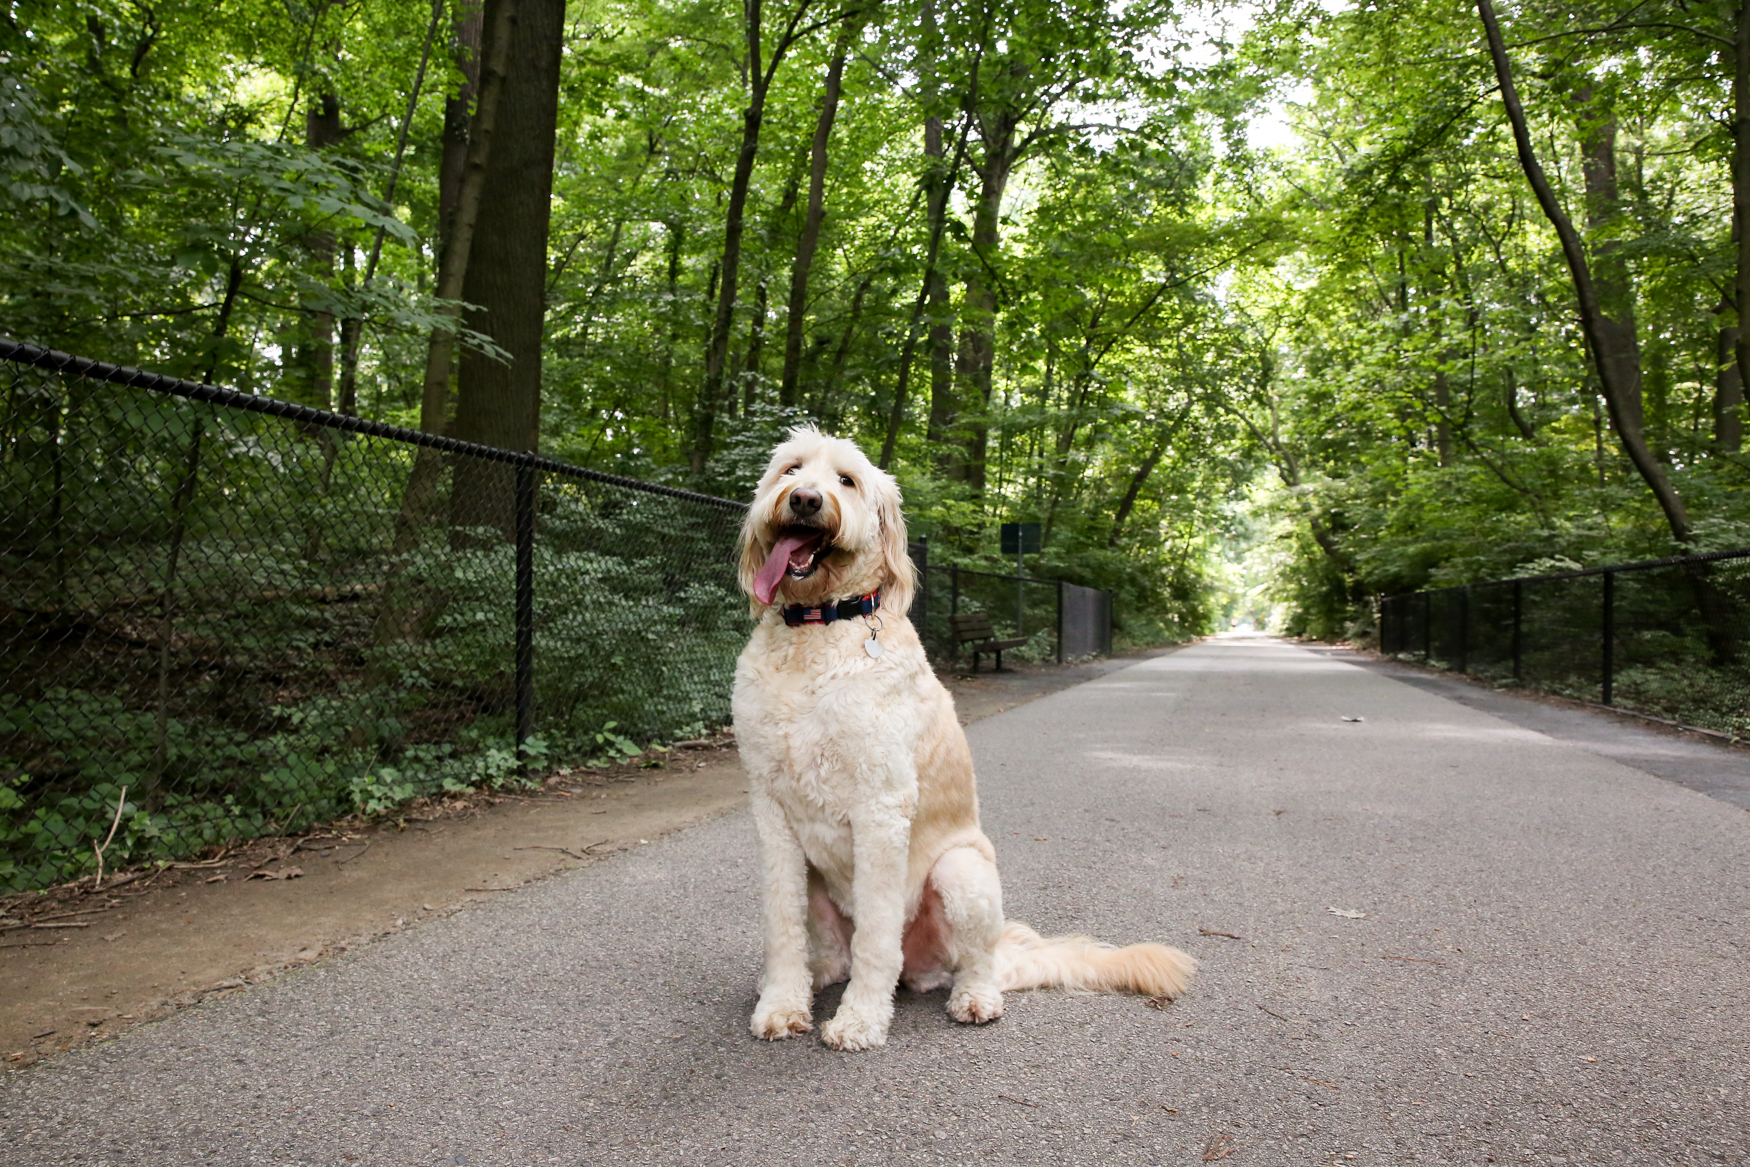 "Meet Liberty, a six-year-old Goldendoodle with more stamps in her passport than I have! Liberty's family lived abroad until January and she traveled with them to a few places around Europe. She was particularly fond of the Colosseum in Rome. While living in Tirana, Albania she ""starred"" in an Albanian pop star's music video! Now,{ } Liberty has traded in the celeb life for the suburbs and is enjoying exploring Bethesda, and getting to know her new best friend, her 15-month-old human brother. Liberty hates cars,{ } loves carbs, and her best skills are cuddling and playing ball. If you or someone you know has a pet you'd like featured, email us at dcrefined@gmail.com or tag #DCRUFFined and your furbaby could be the next spotlighted! (Image: Amanda Andrade-Rhoades/ DC Refined)"